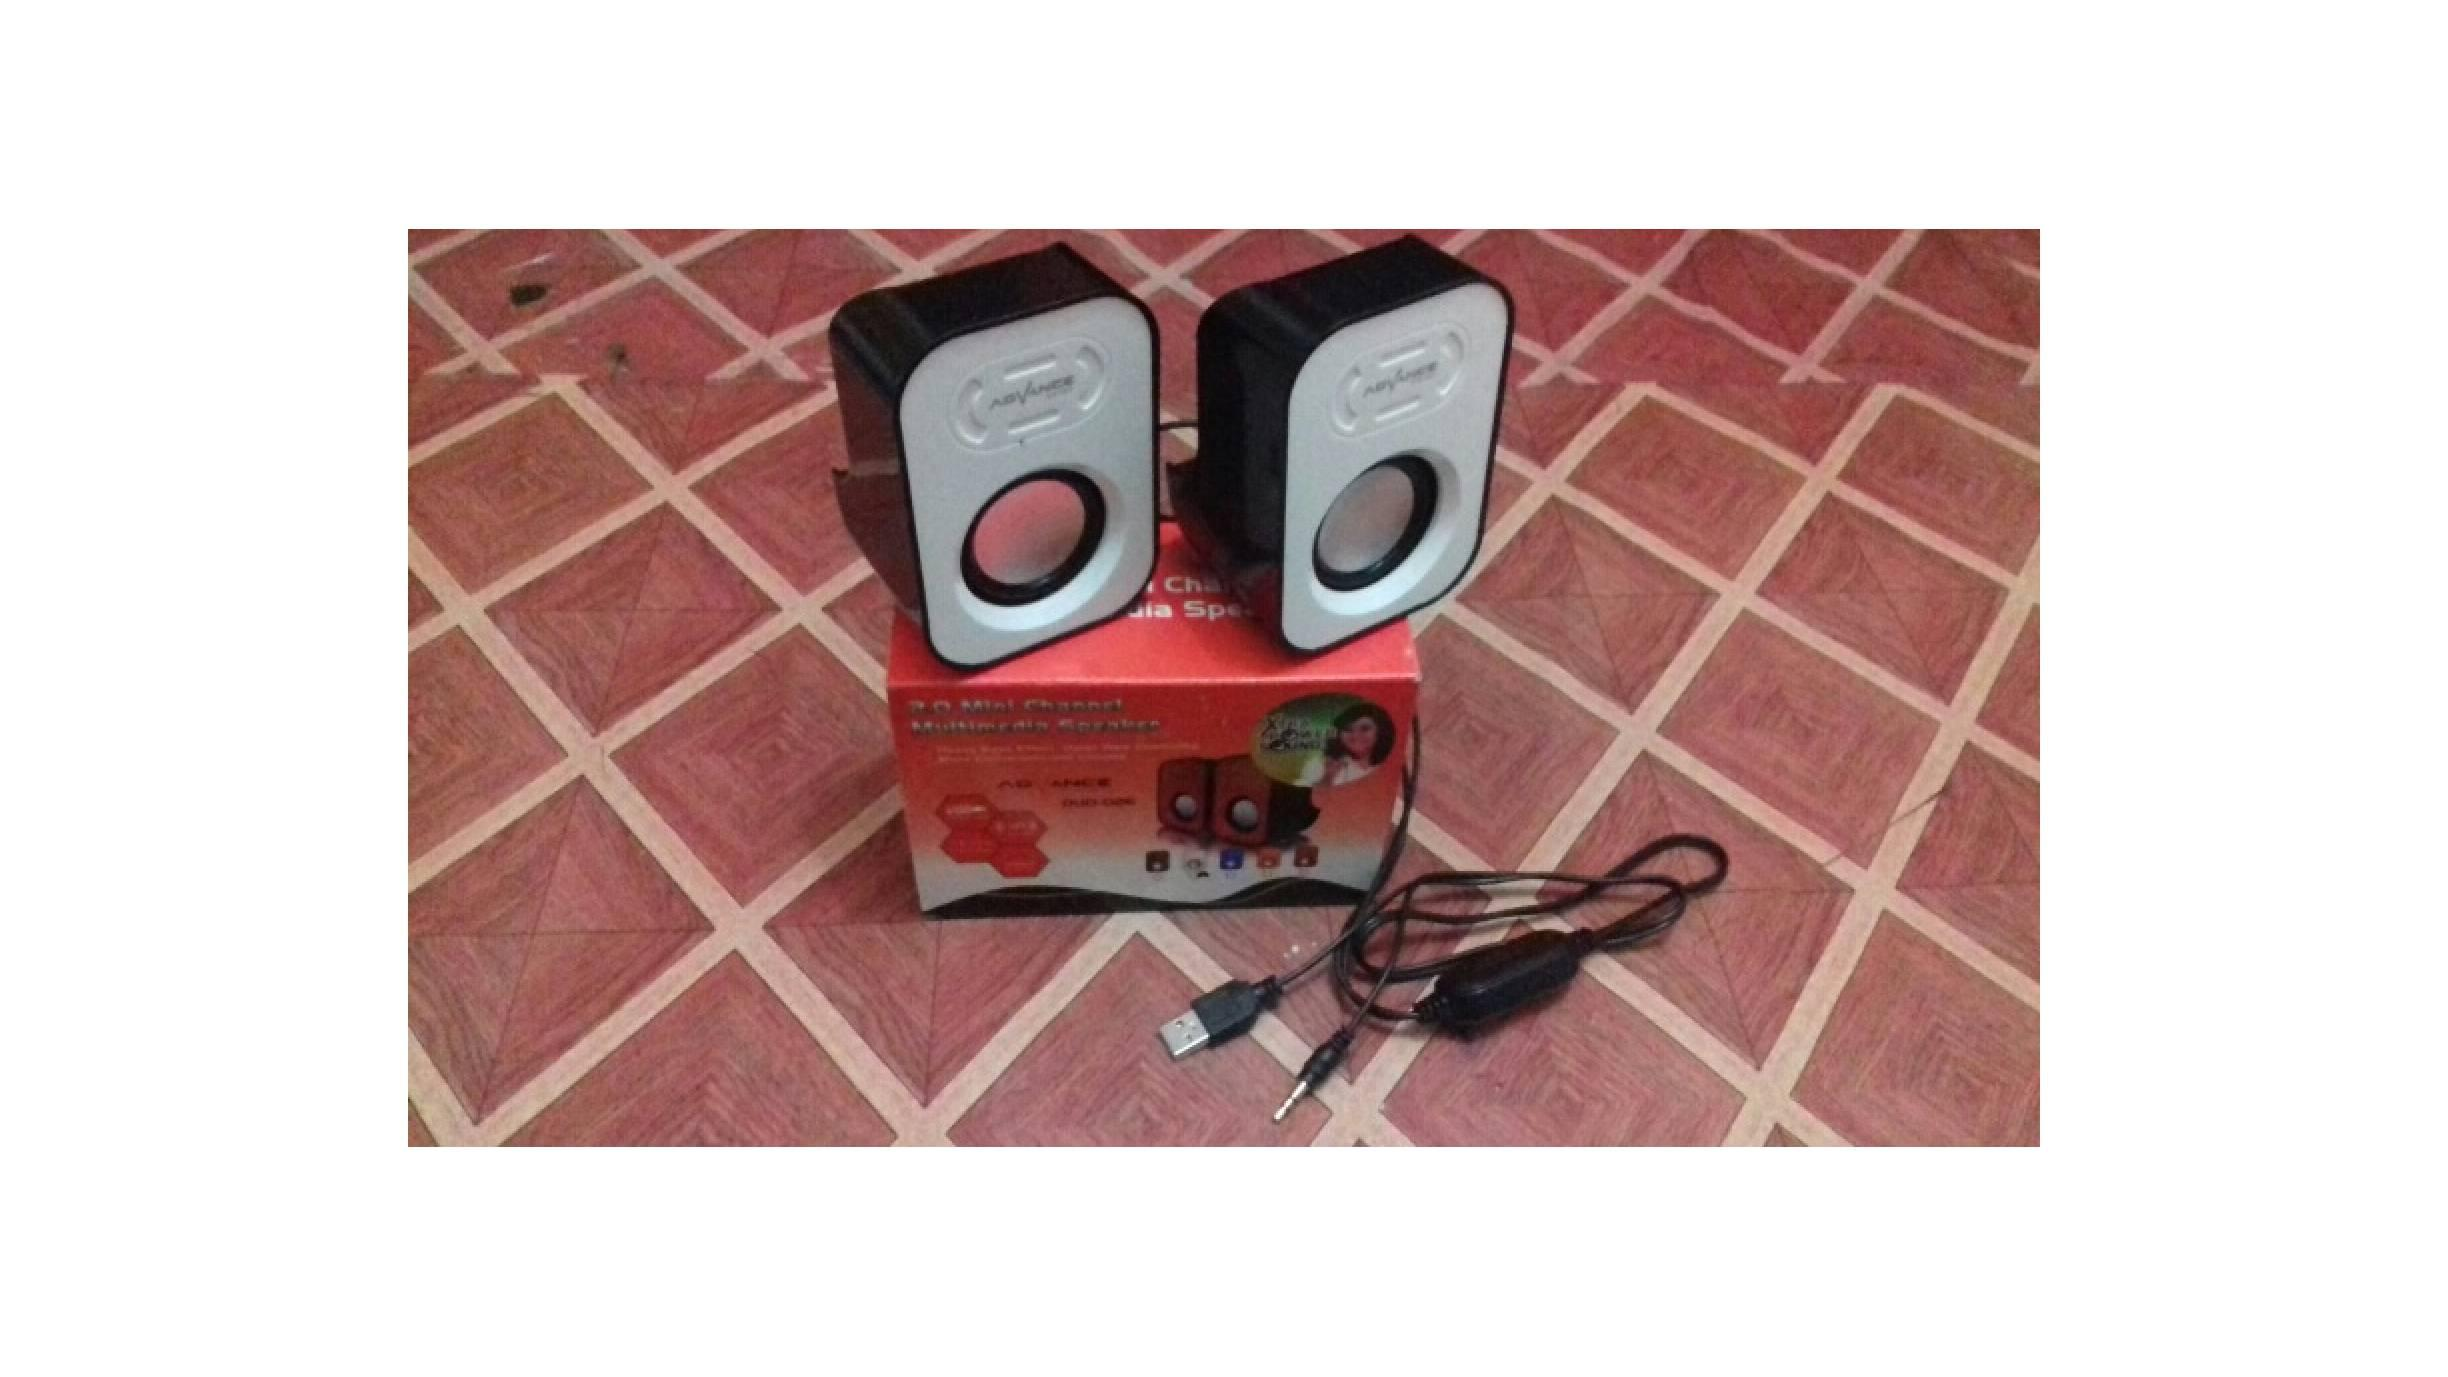 Speaker advance DUO 026 Xtra power powe usb